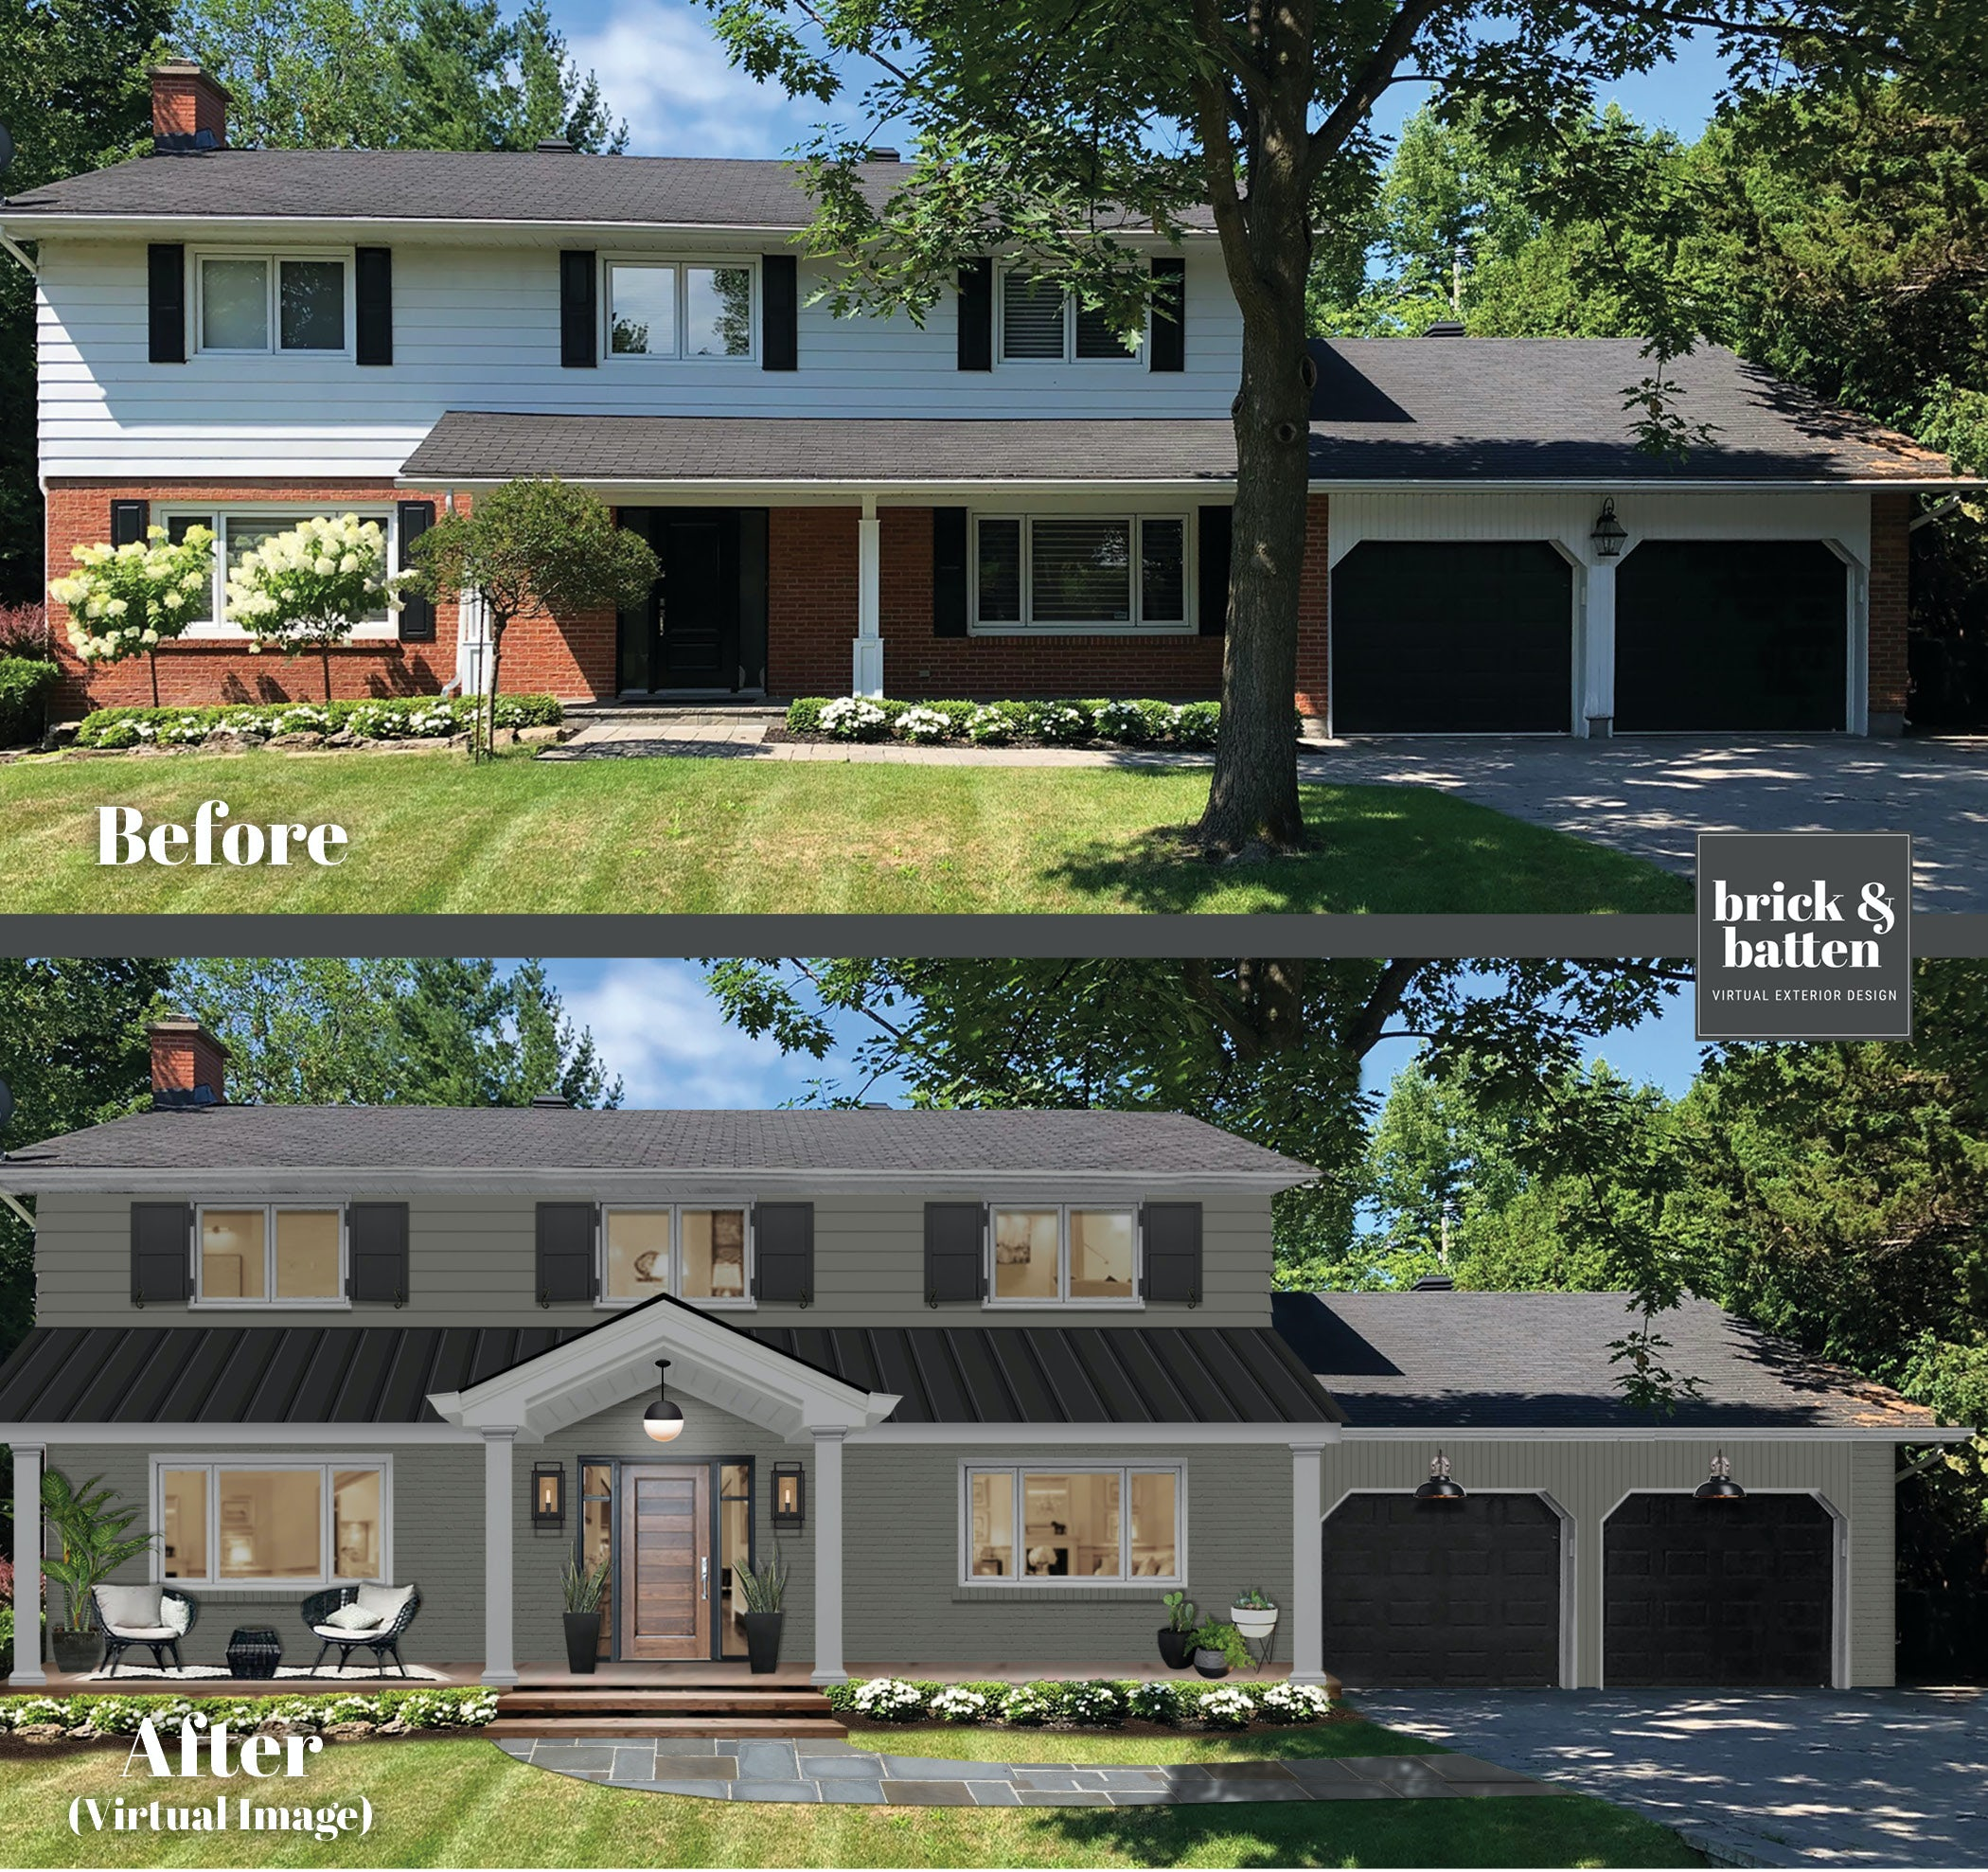 Before and after of a home with more symmetry